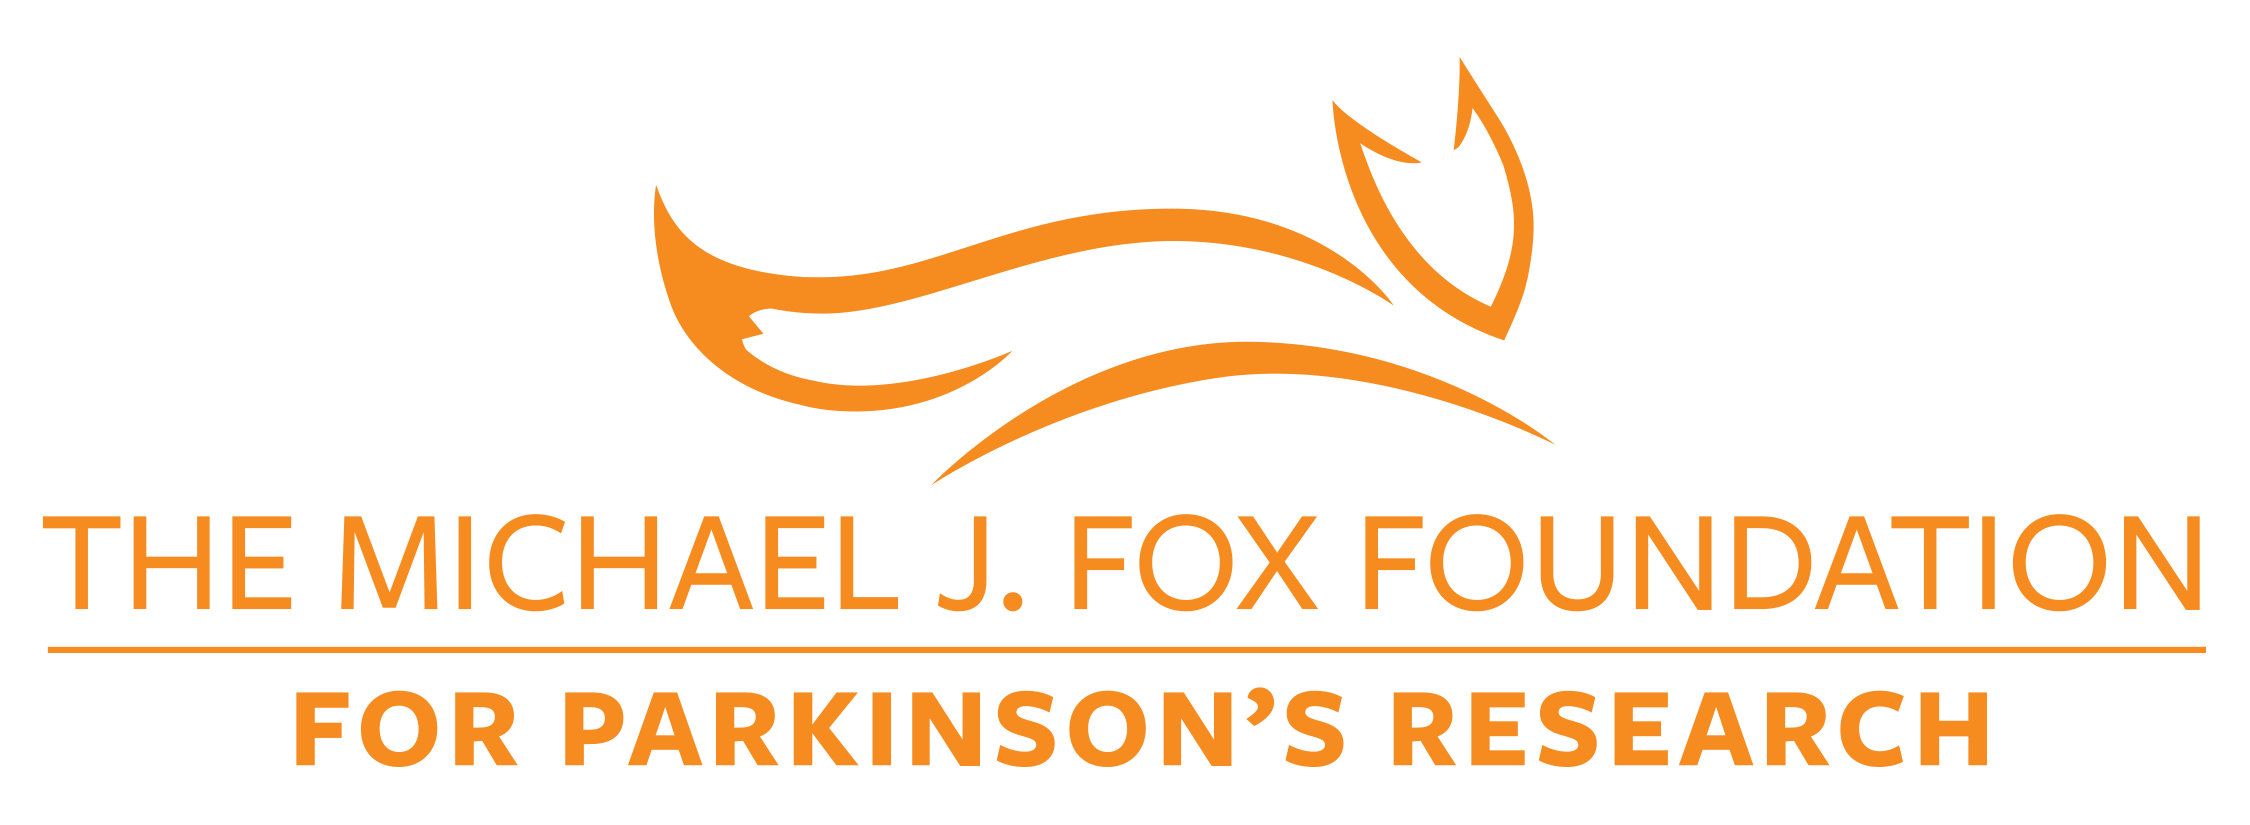 THE MICHAEL J. FOX FOUNDATION | FOR PARKINSON'S RESEARCH